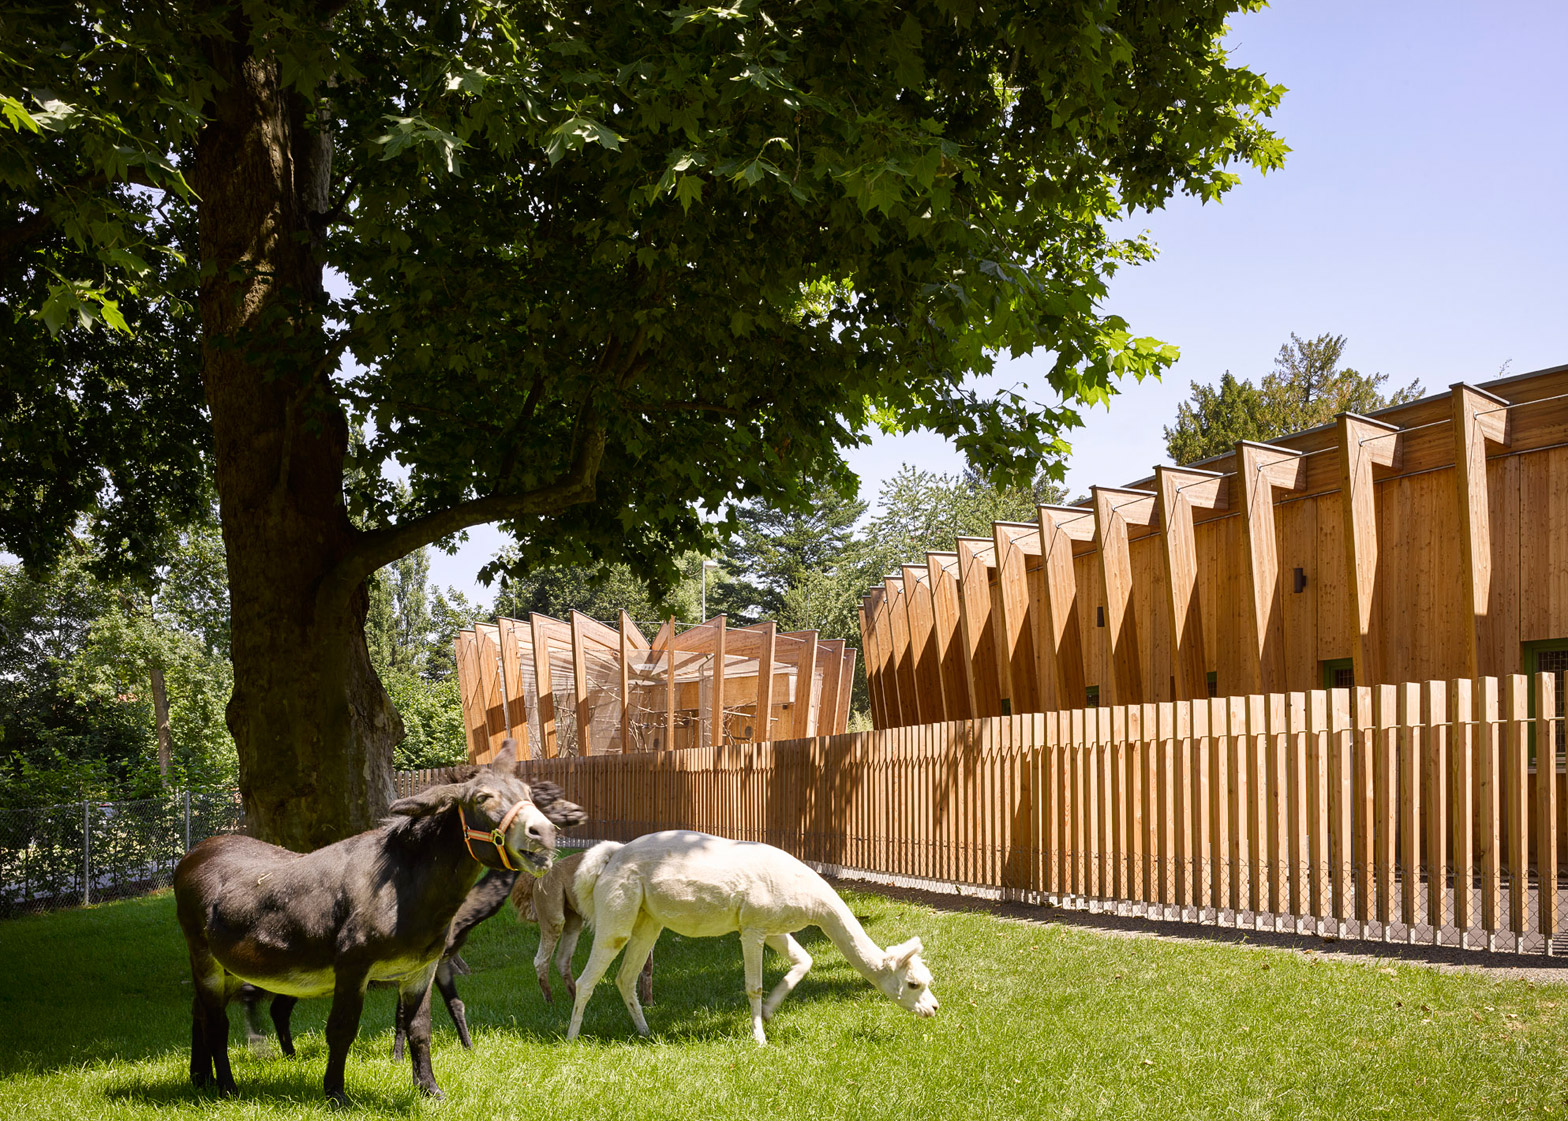 Petting Zoo by Kresings Architektur